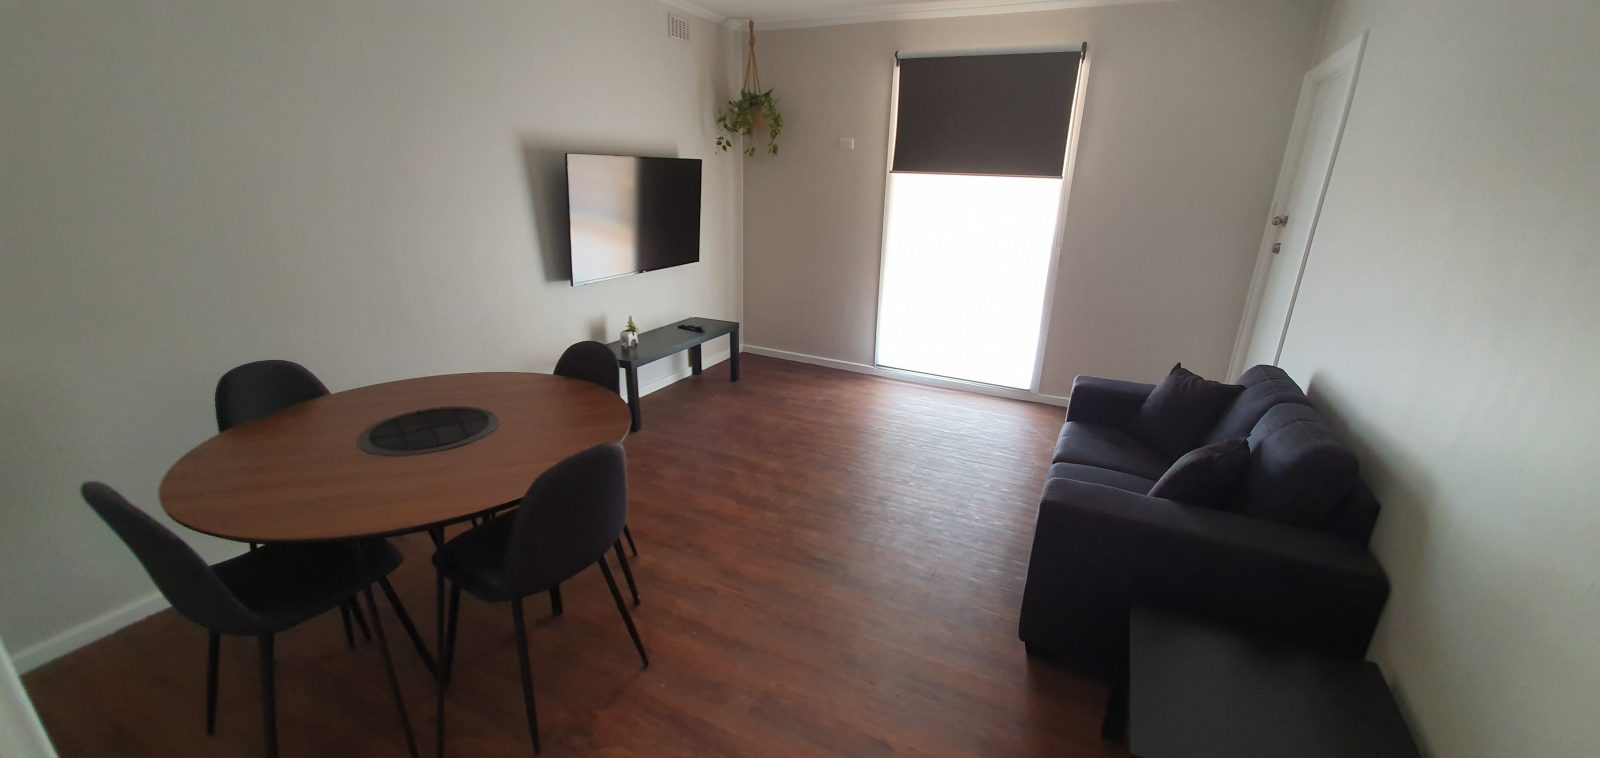 Recently renovated home